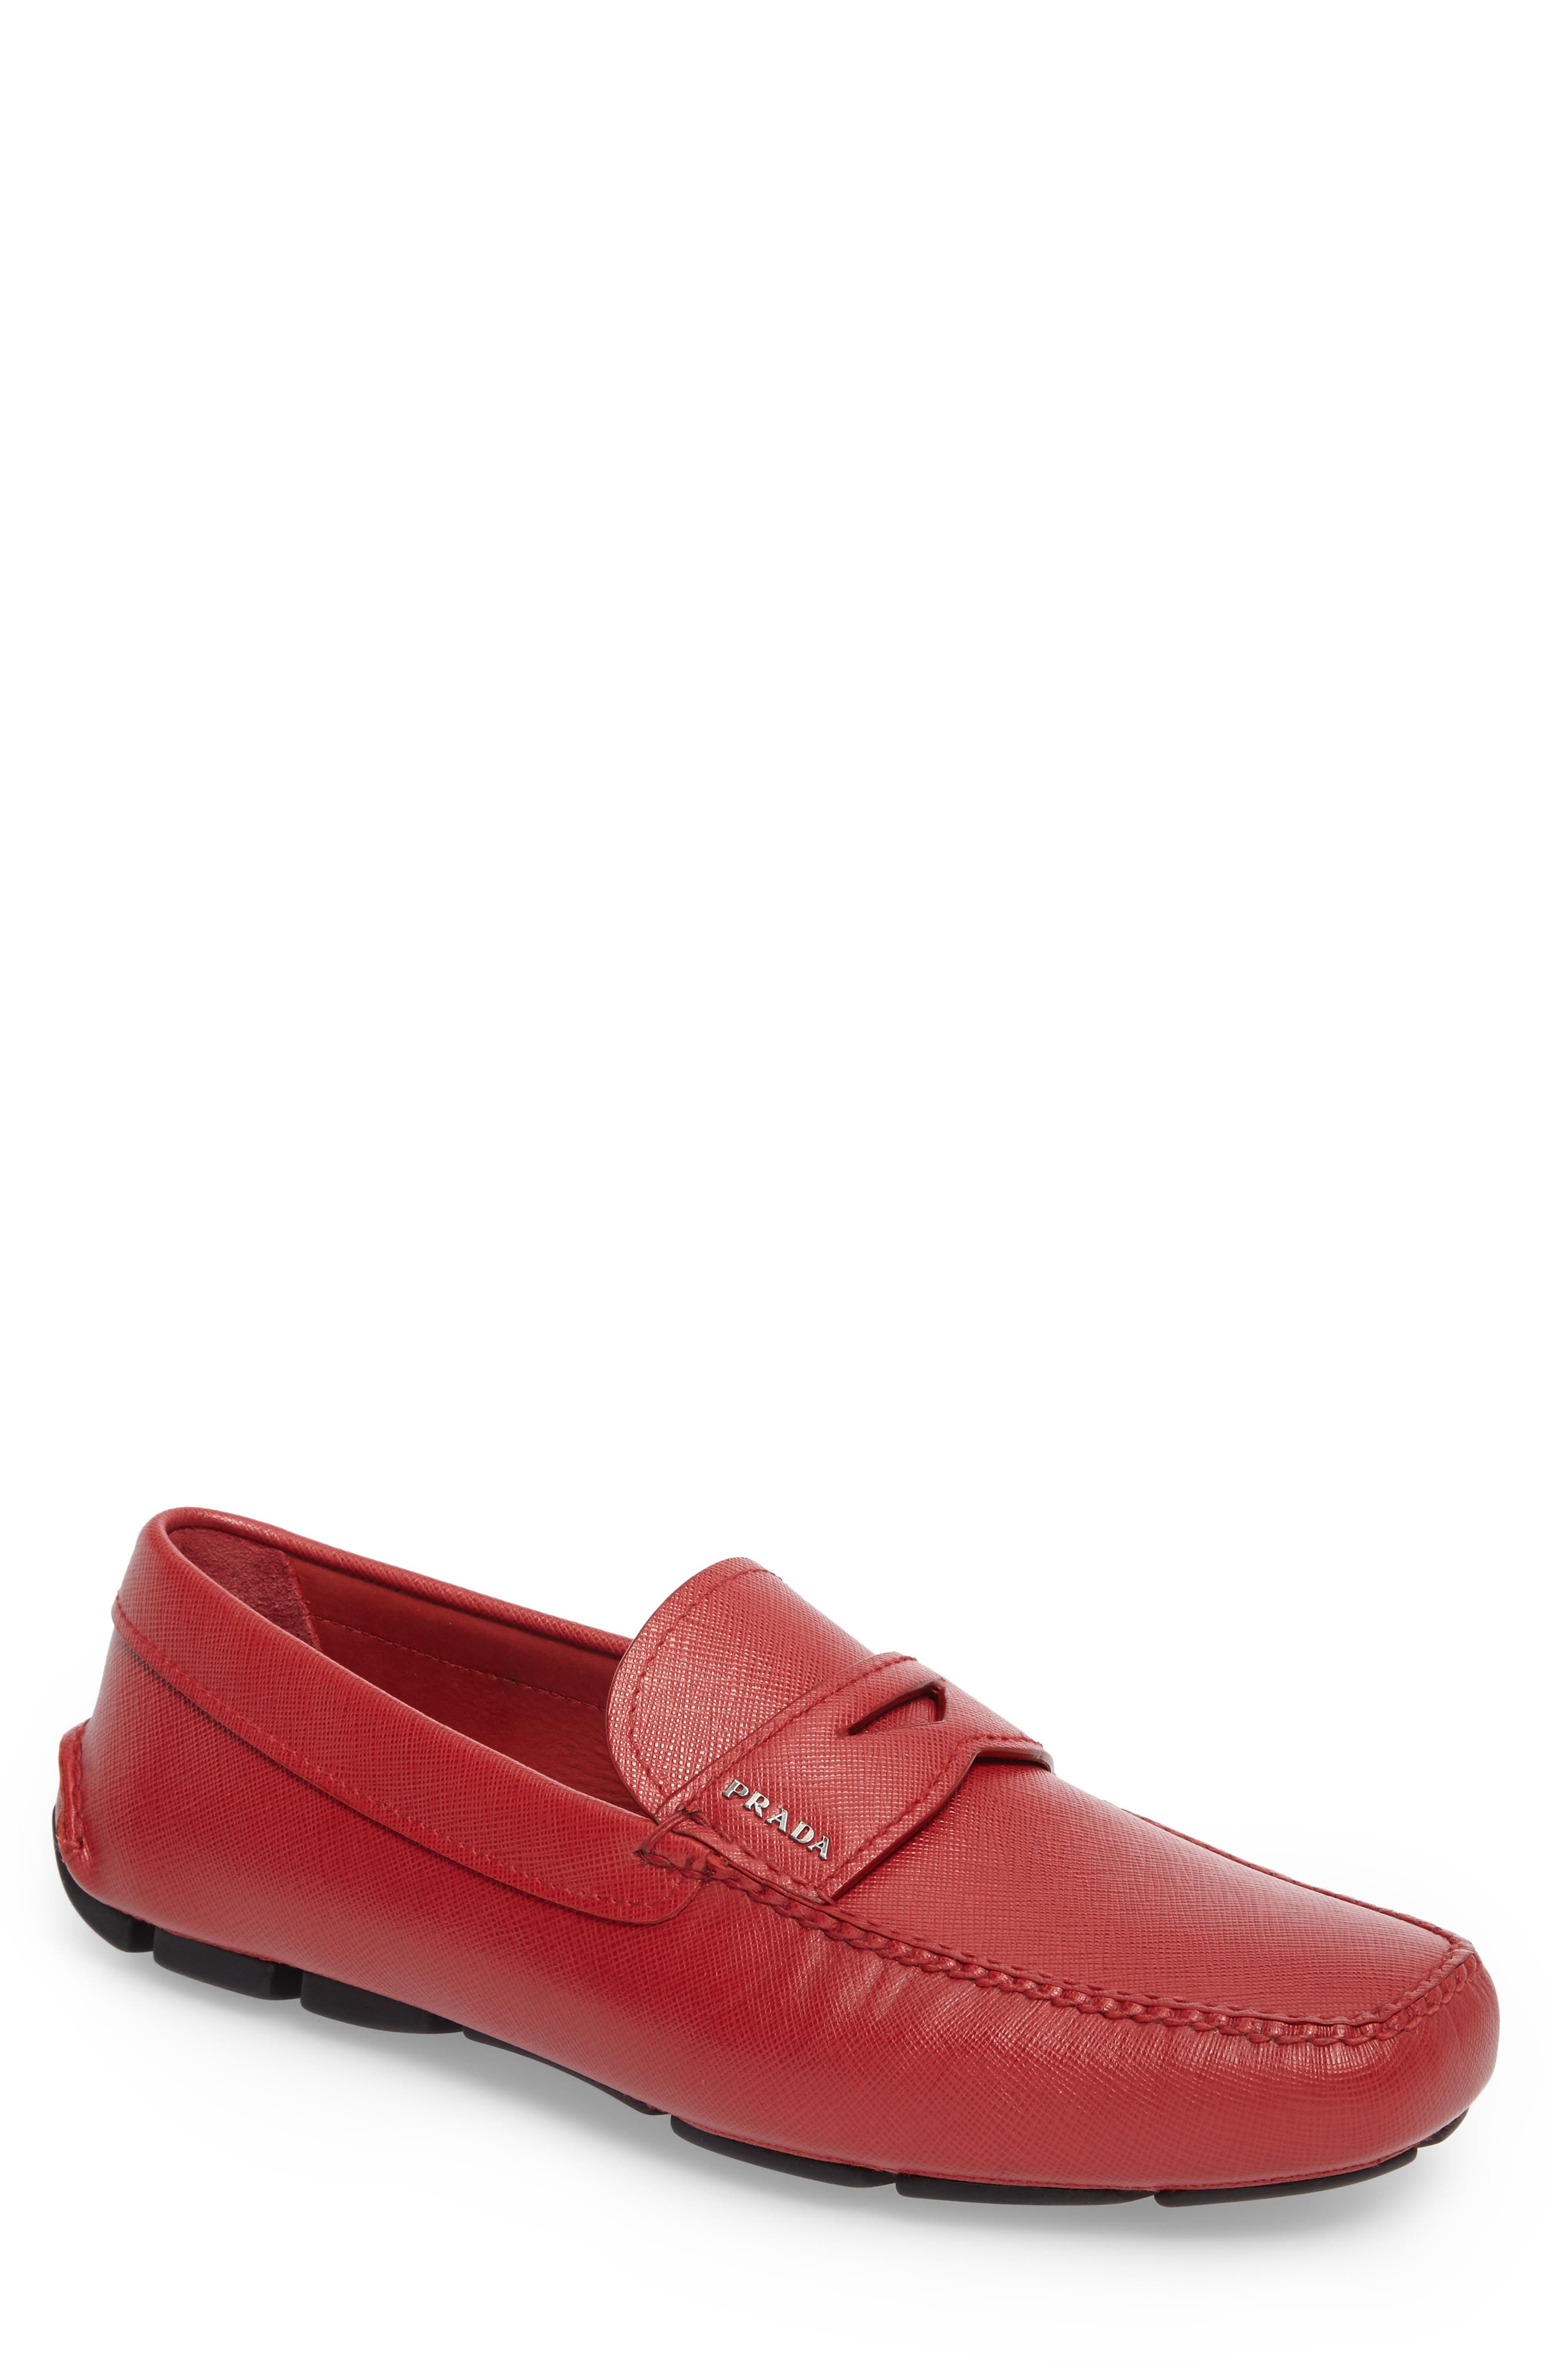 Main Image - Prada Driving Shoe (Men)